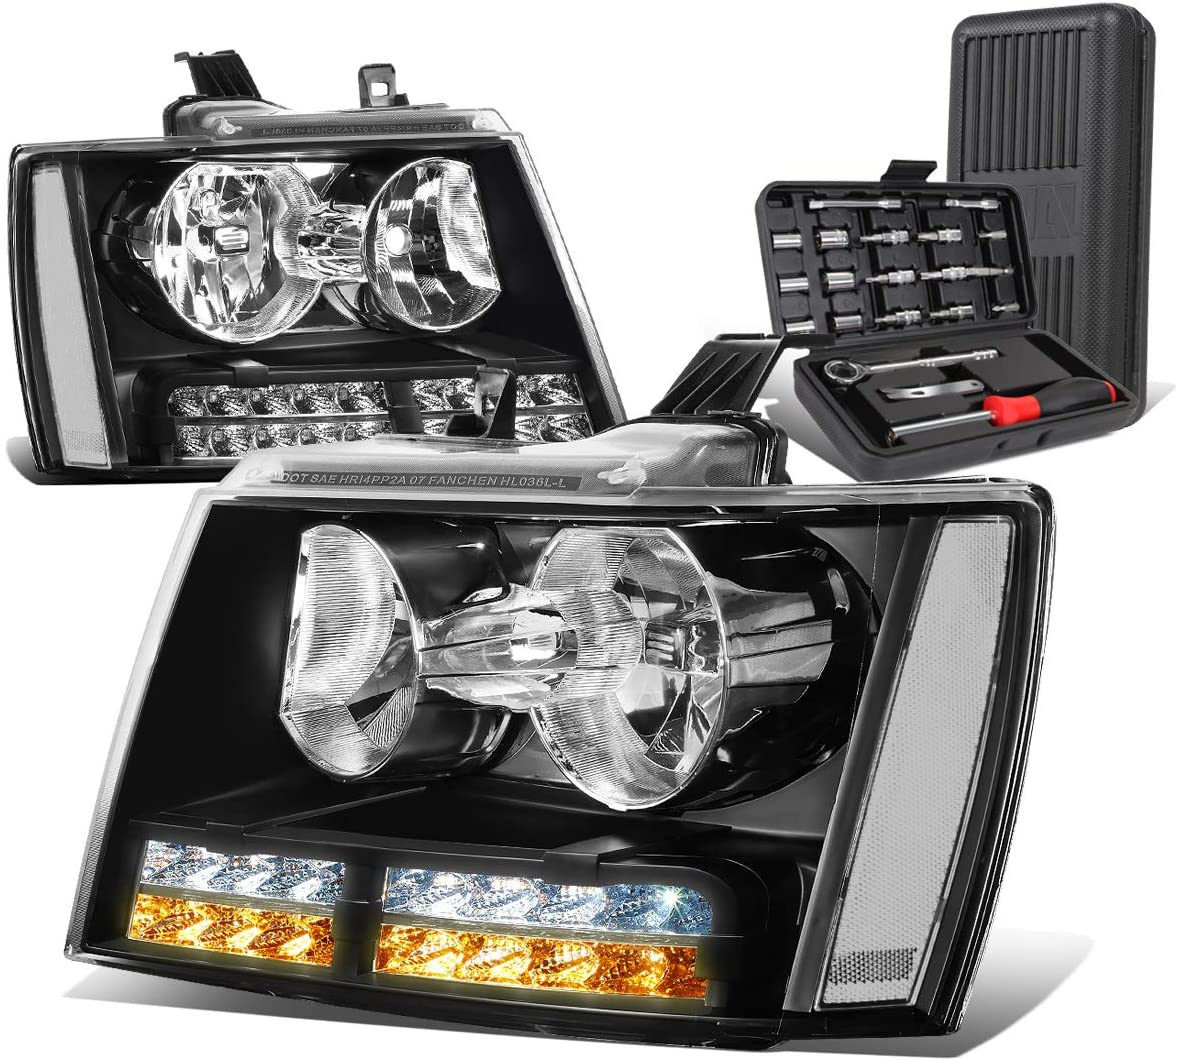 LED DRL Signal Black Housing Clear Corner Headlight Lamps+Tool Kit Replacement for Chevy Avalanche Tahoe Suburban 07-14